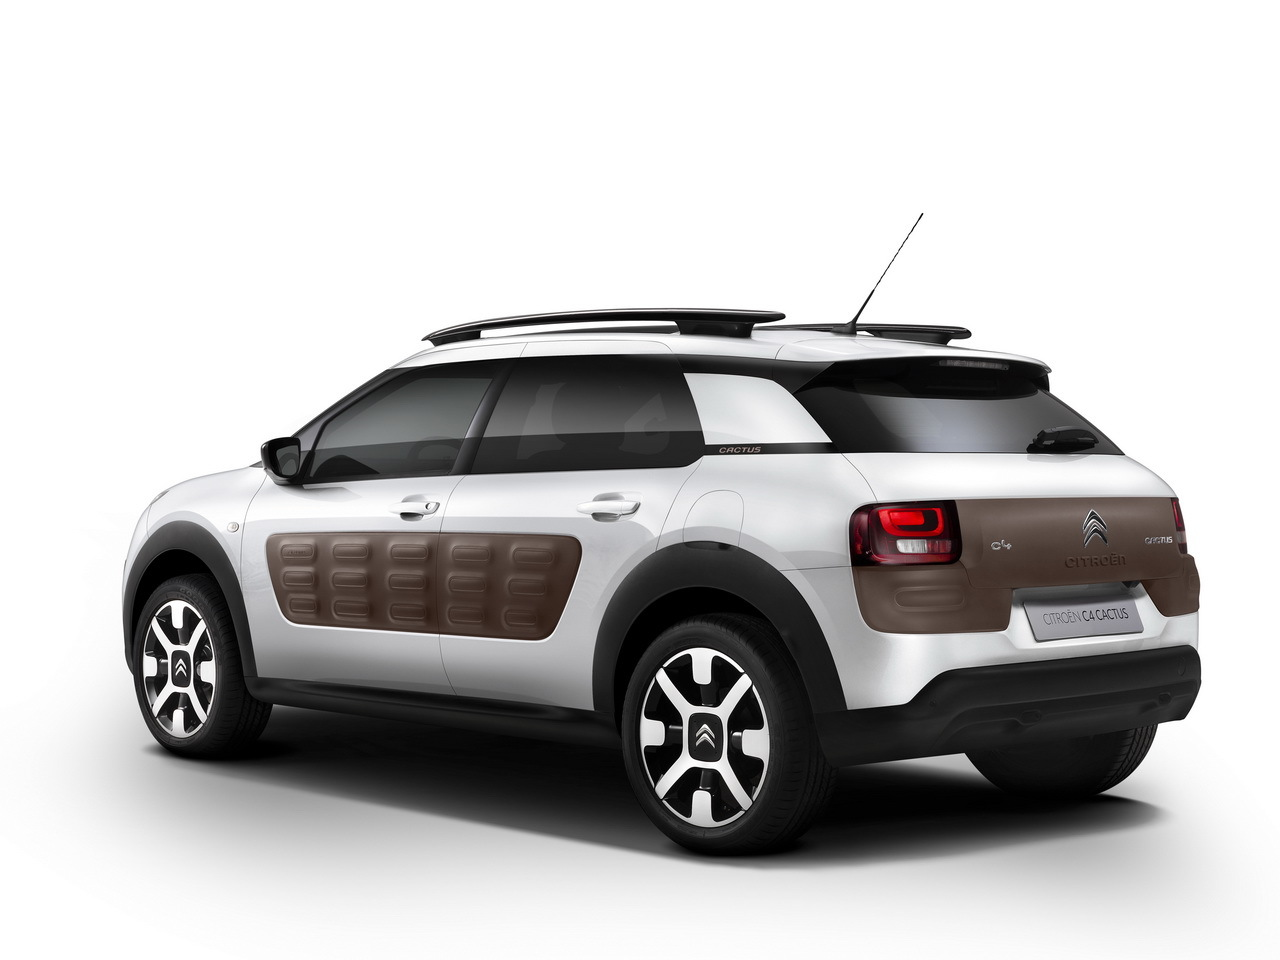 citroen c4 cactus la nouvelle citro n c4 cactus pique. Black Bedroom Furniture Sets. Home Design Ideas